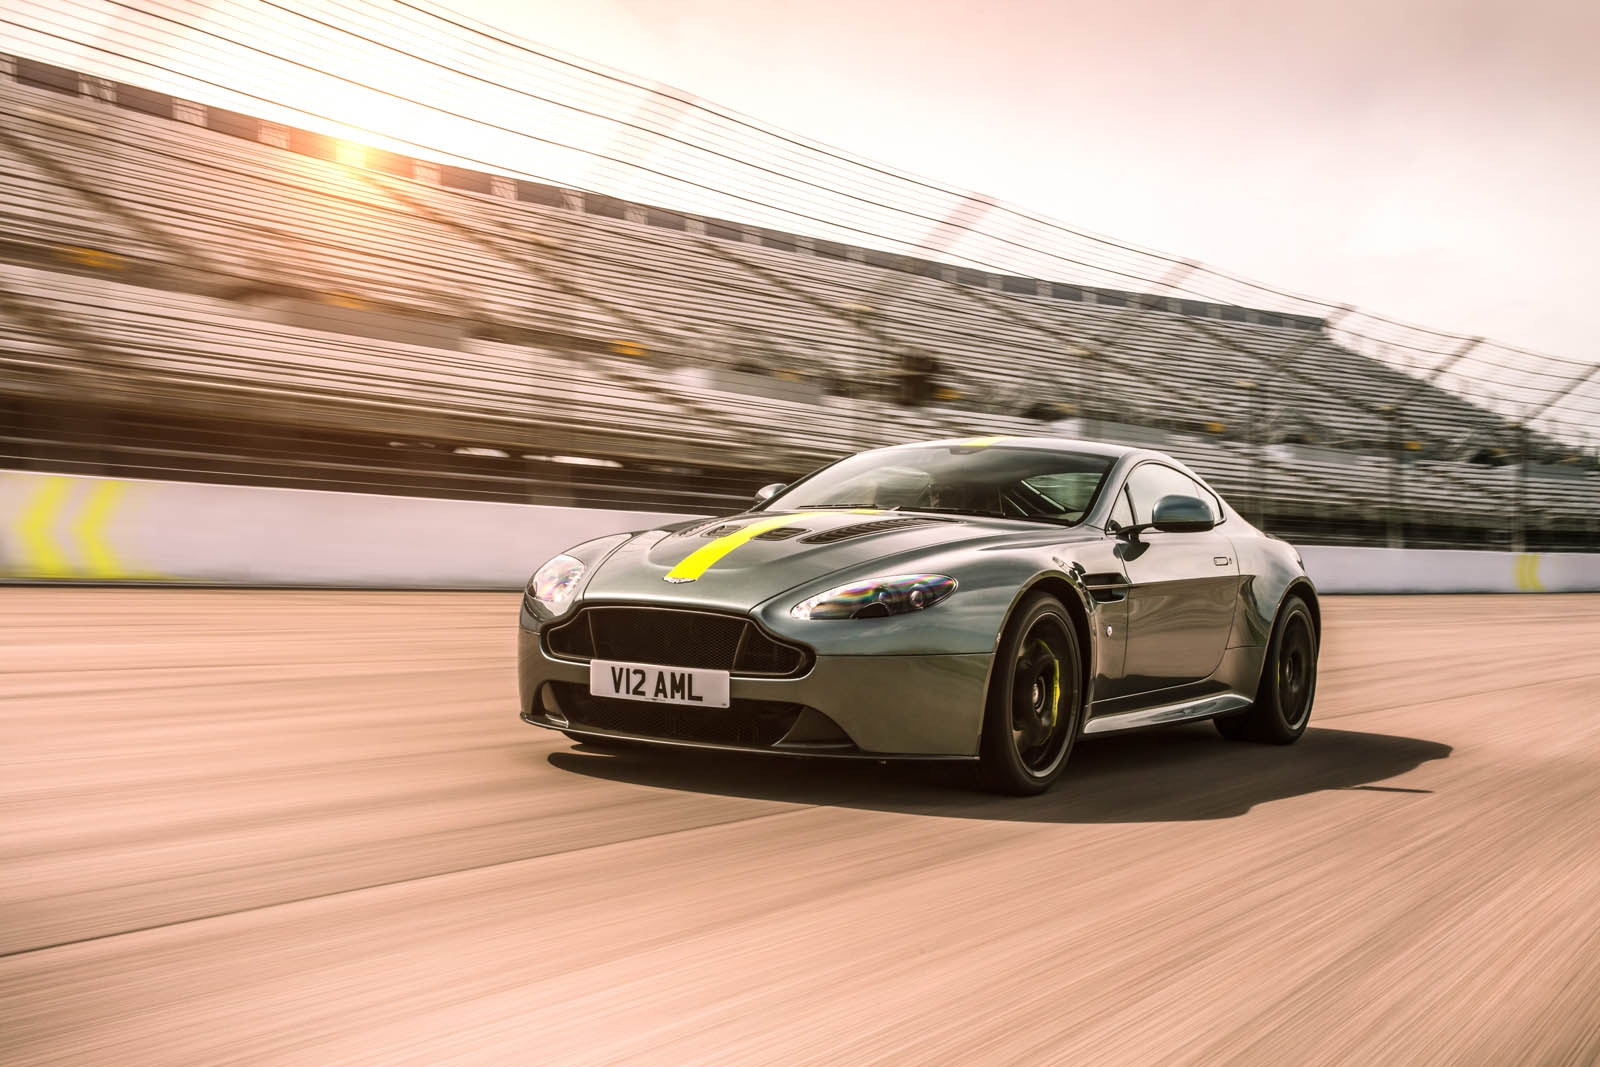 Fast track: 5 luxury cars with racing makeovers